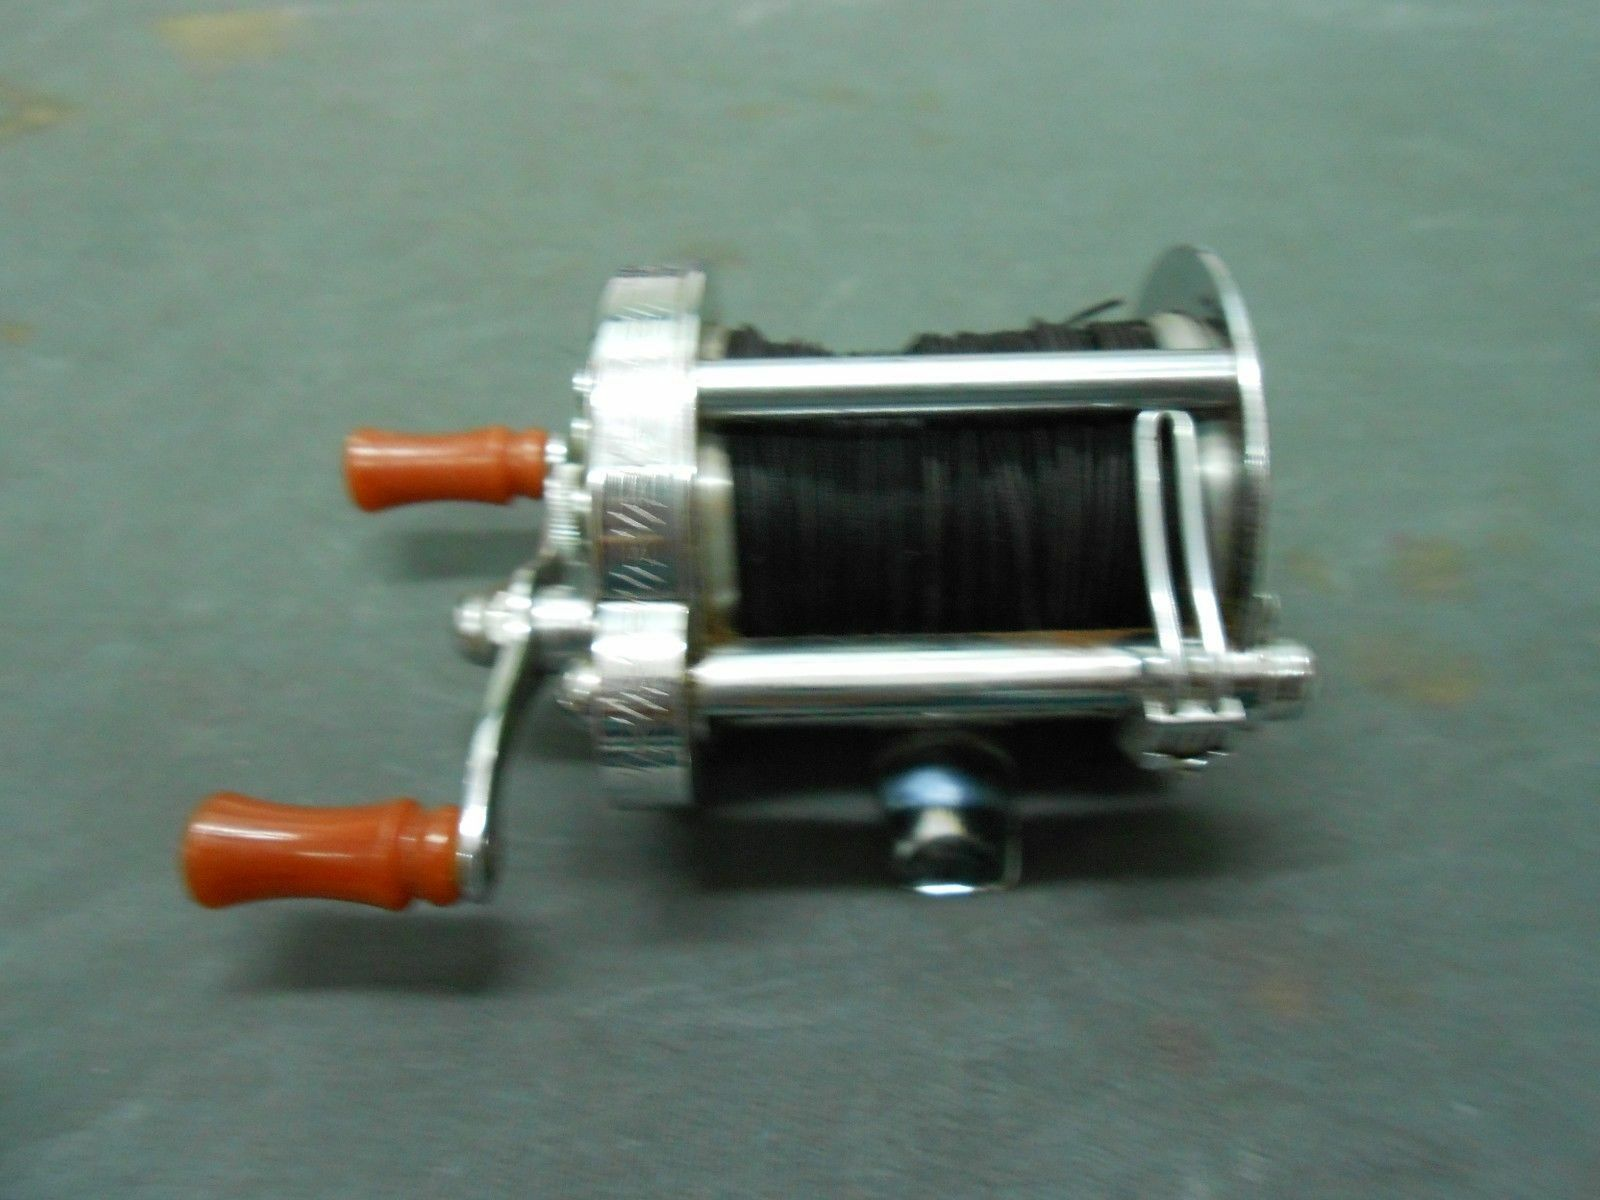 NICE PFLUEGER AKRON NO 1893 L CASTING REEL  VERY SMOOTH OPERATING